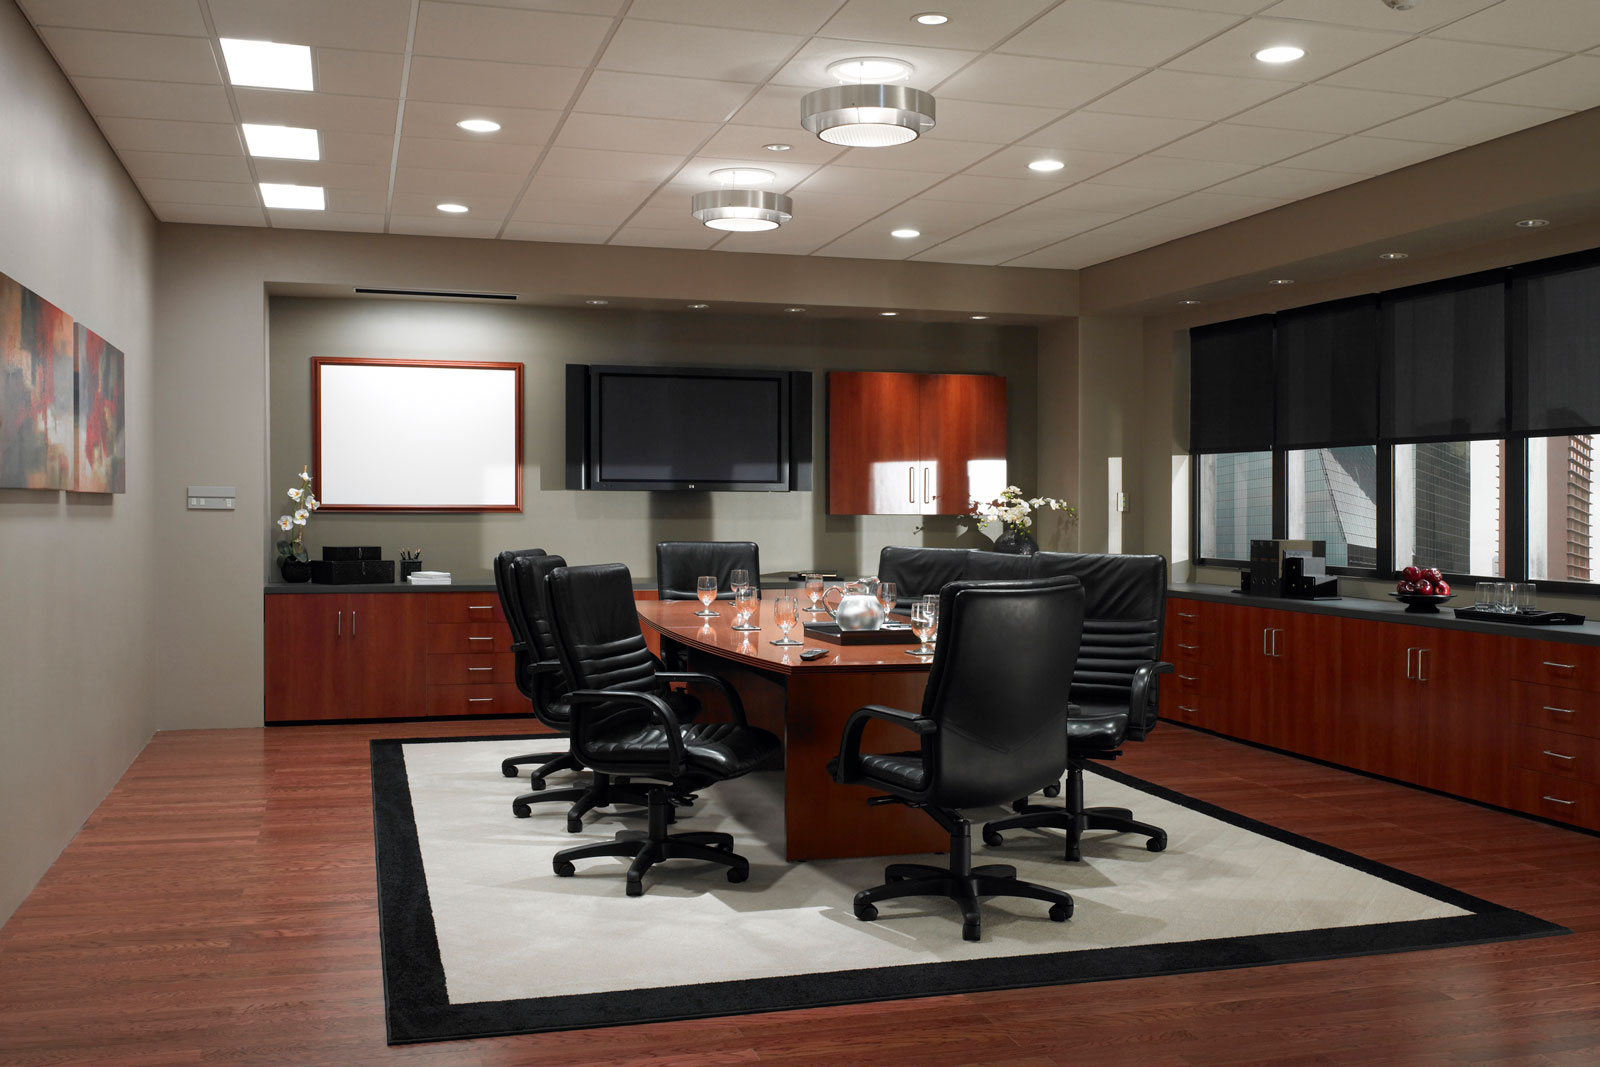 Corporate Conference Room Audio Video AV Installation - Atlanta, GA